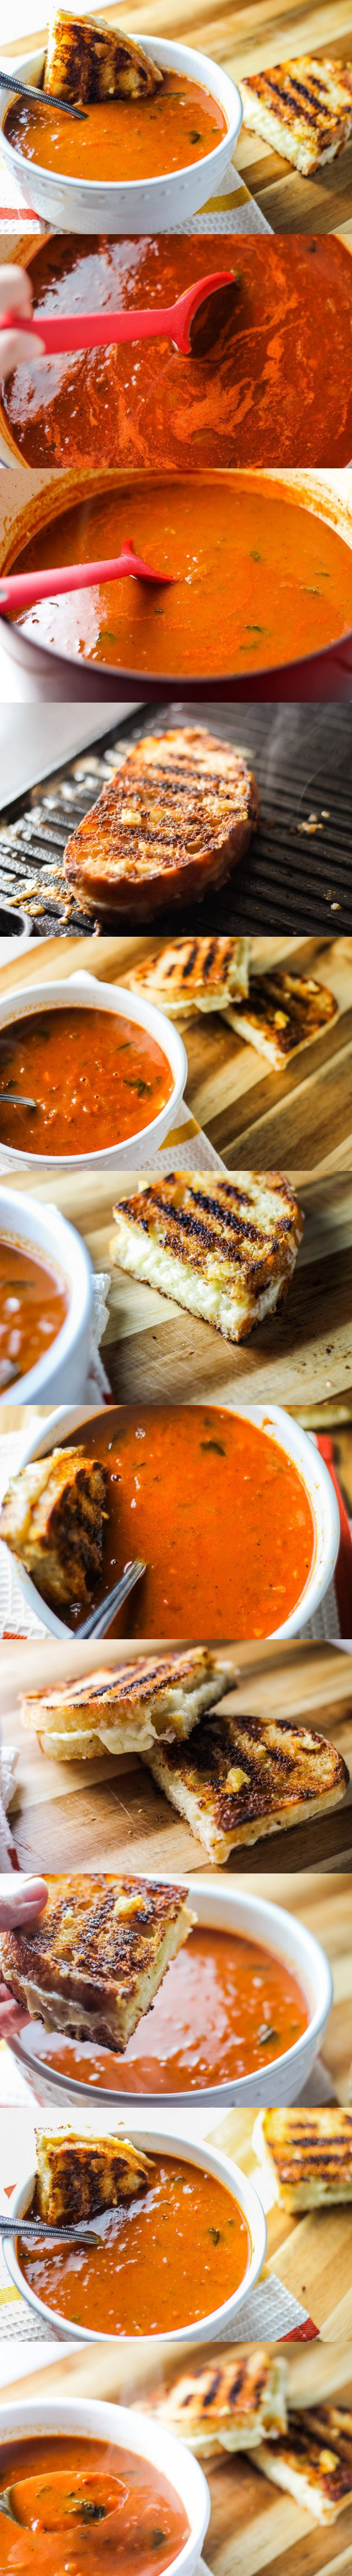 Grilled Cheese Sandwiches and Rustic Tomato Basil Soup